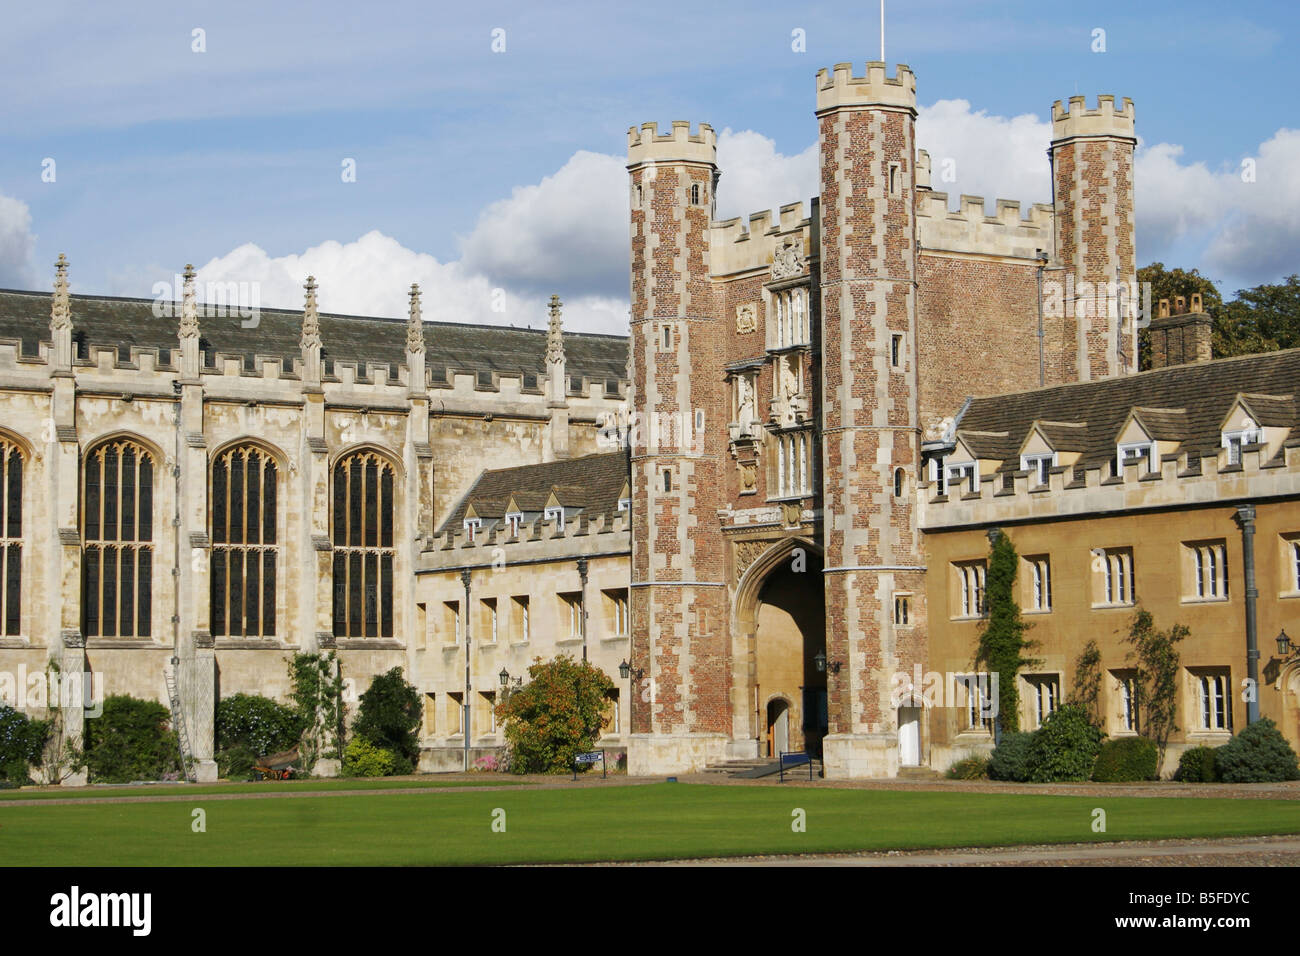 The Great Gate across Great Court, Trinity College, Cambridge - Stock Image